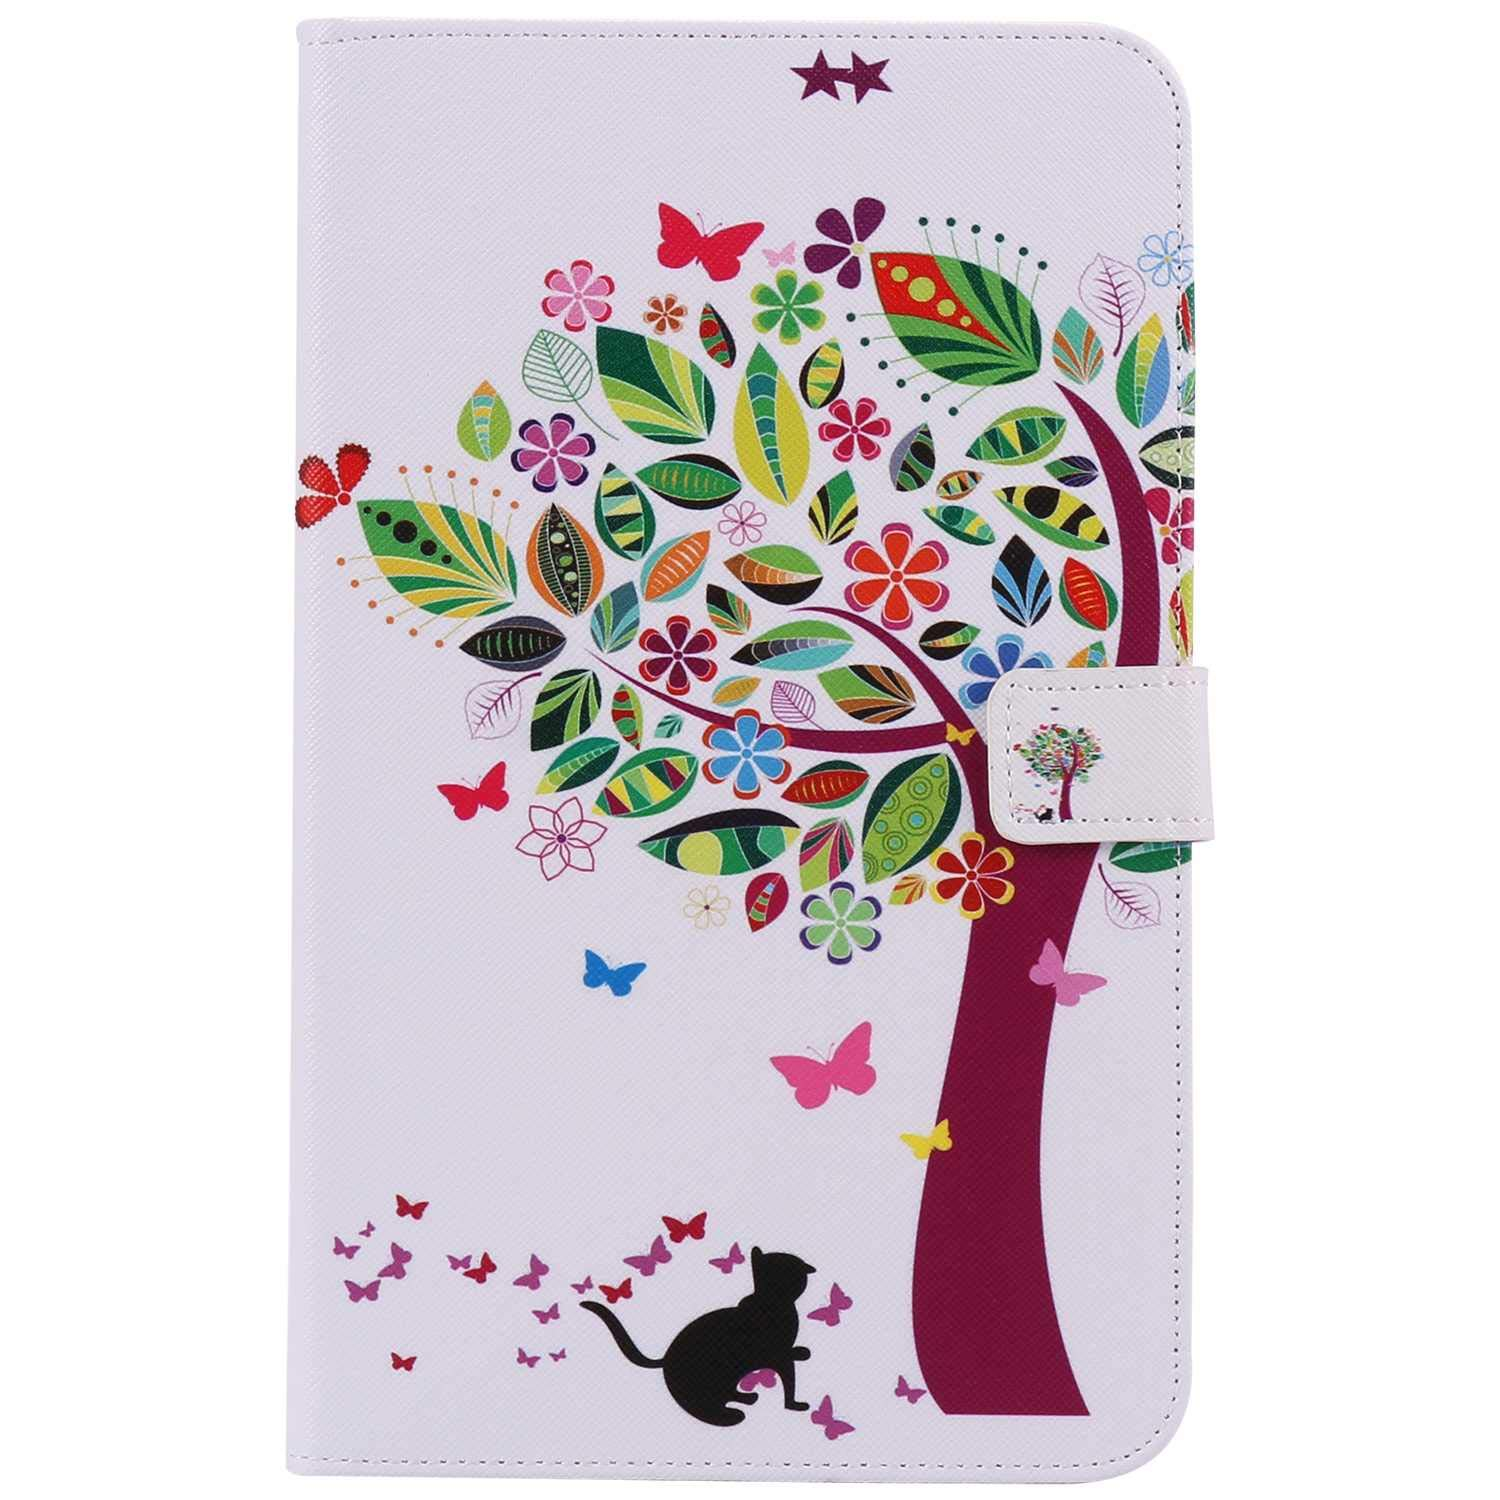 Bear Village Galaxy Tab 4 8.0 Inch Case, Anti Scratch Shell with Adjust Stand, Colorful Design Leather Stand Case for Samsung Galaxy Tab 4 8.0 Inch, Tree Cat by Bear Village